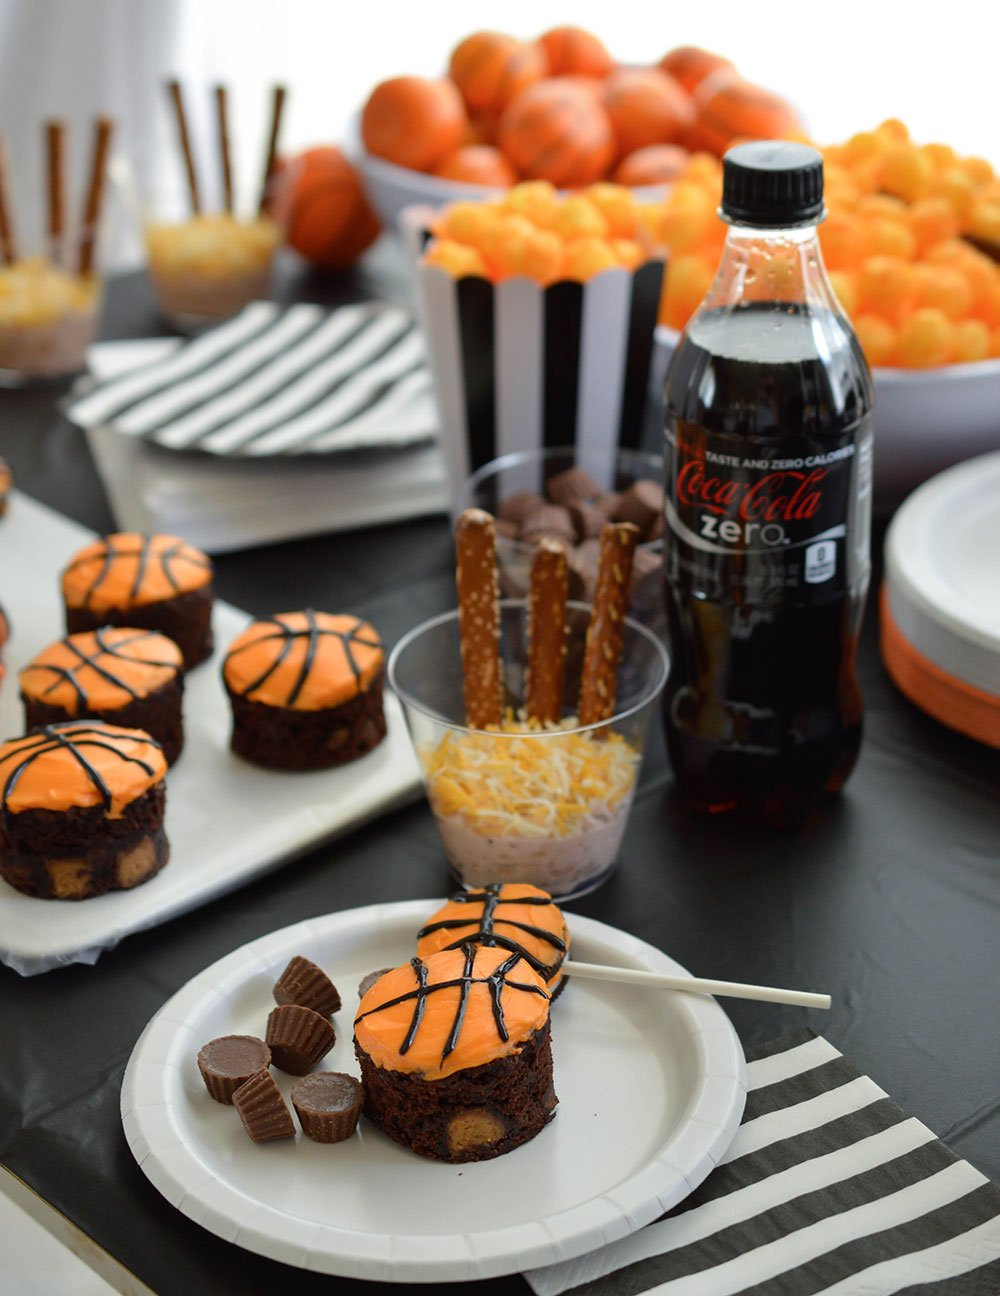 Basketball party ideas wonkywonderful basketball party ideas for your b ball themed celebration cheer on your favorite team forumfinder Images